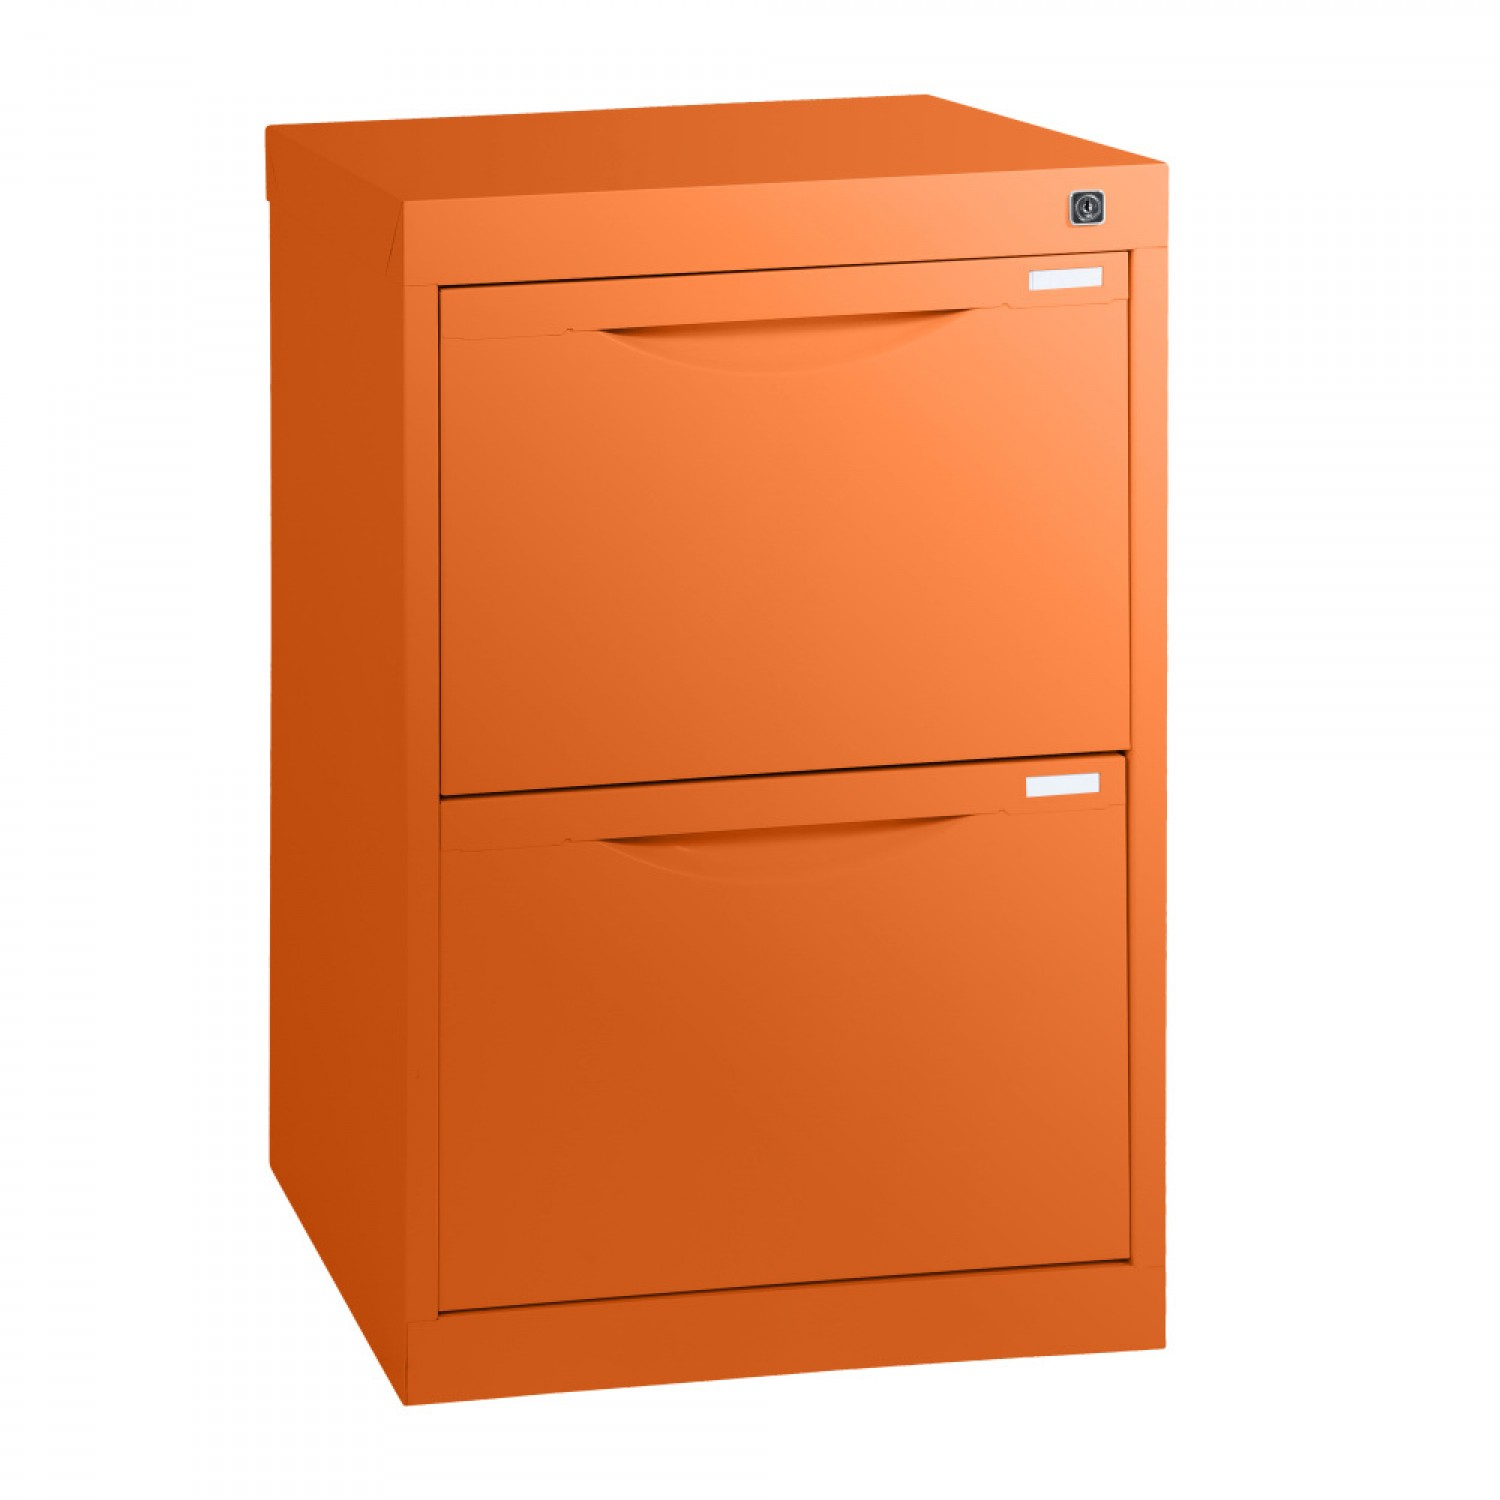 Statewide Homefile Shallow Short Depth 2 Drawer Filing